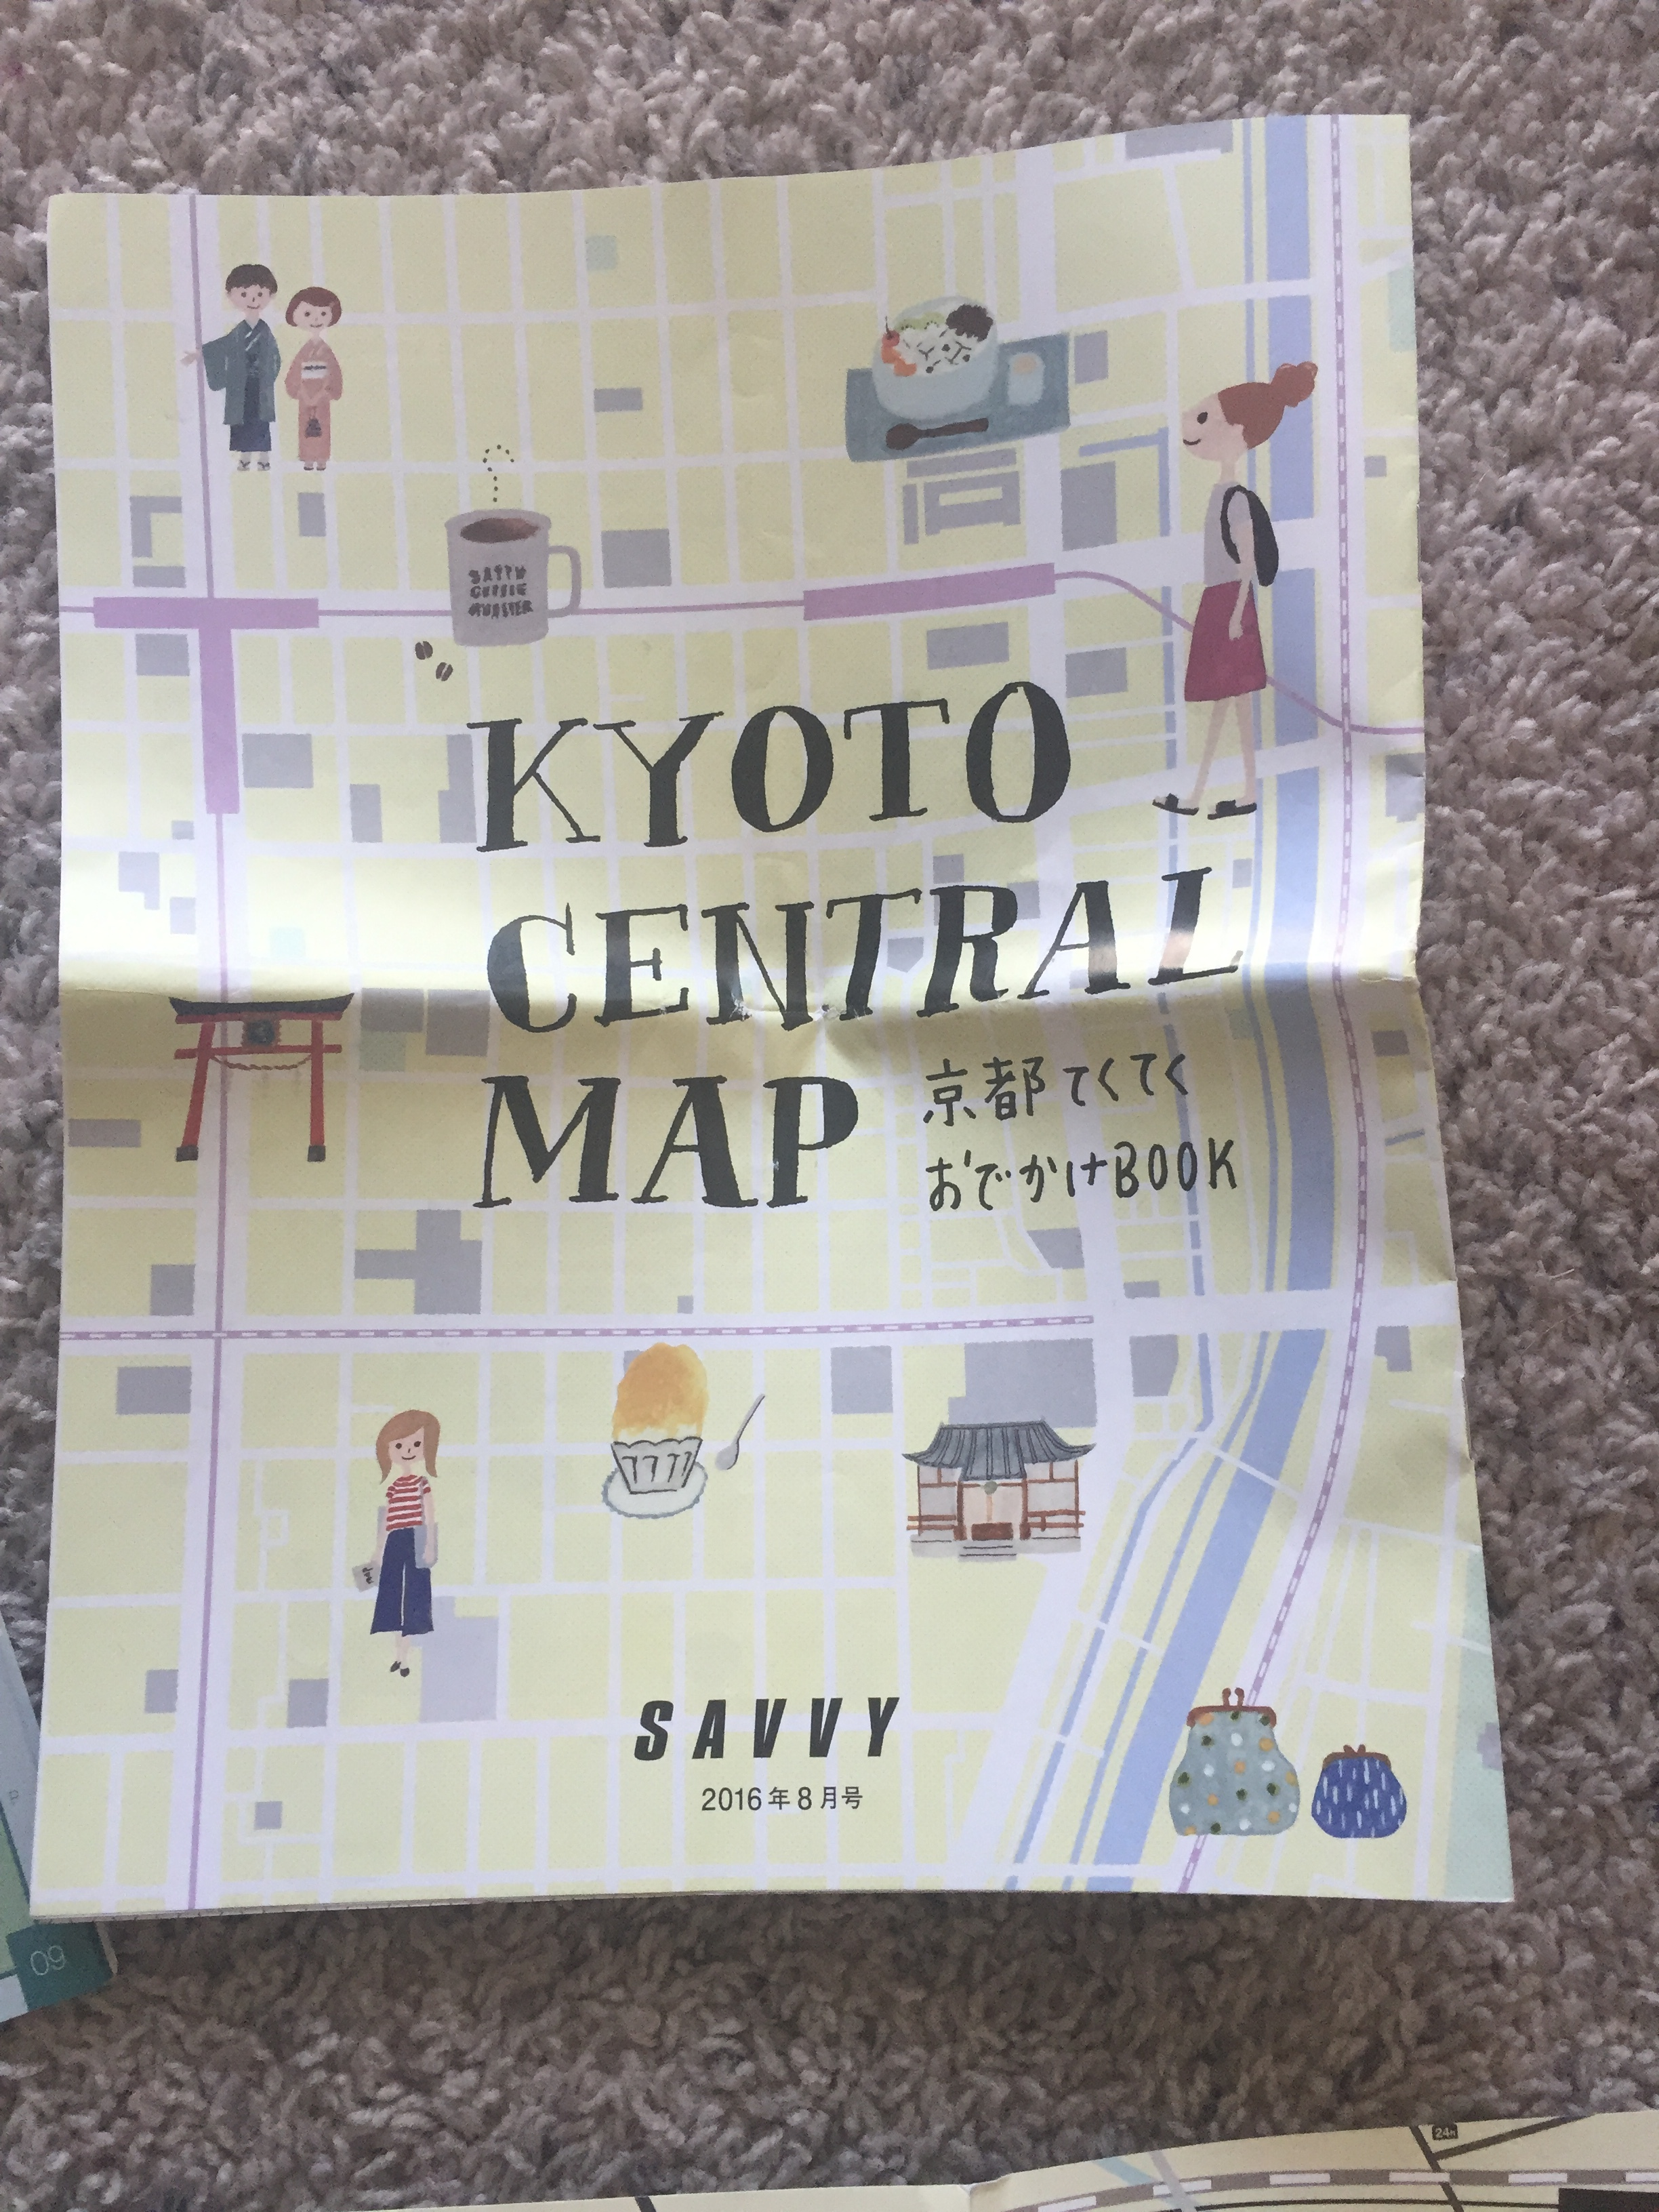 Kyoto Central Map